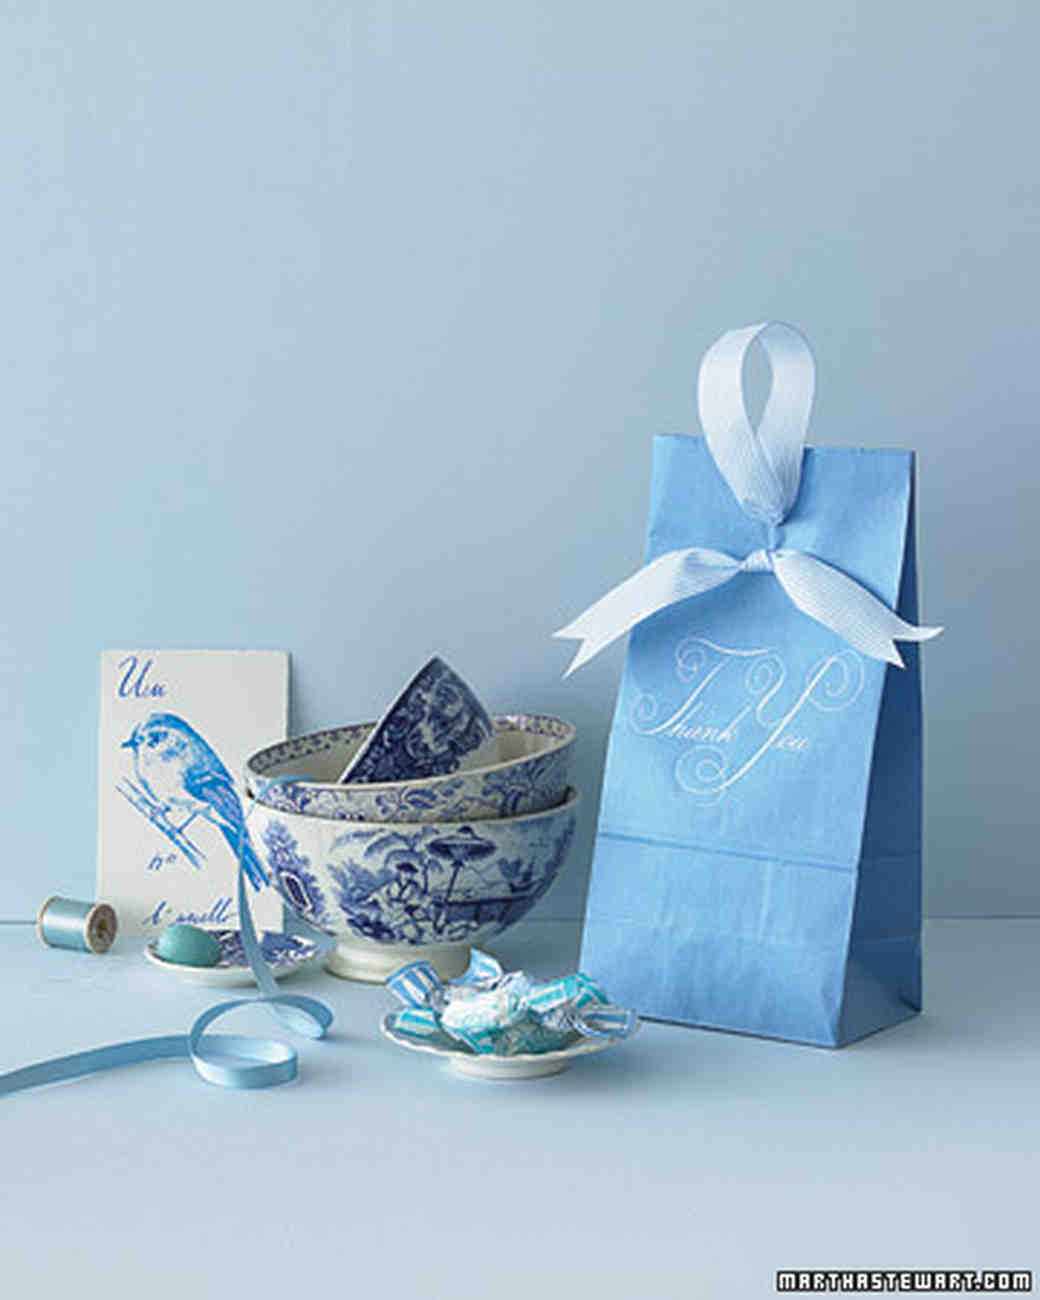 Weddings Good Things: Something Old, New, Borrowed, and Blue